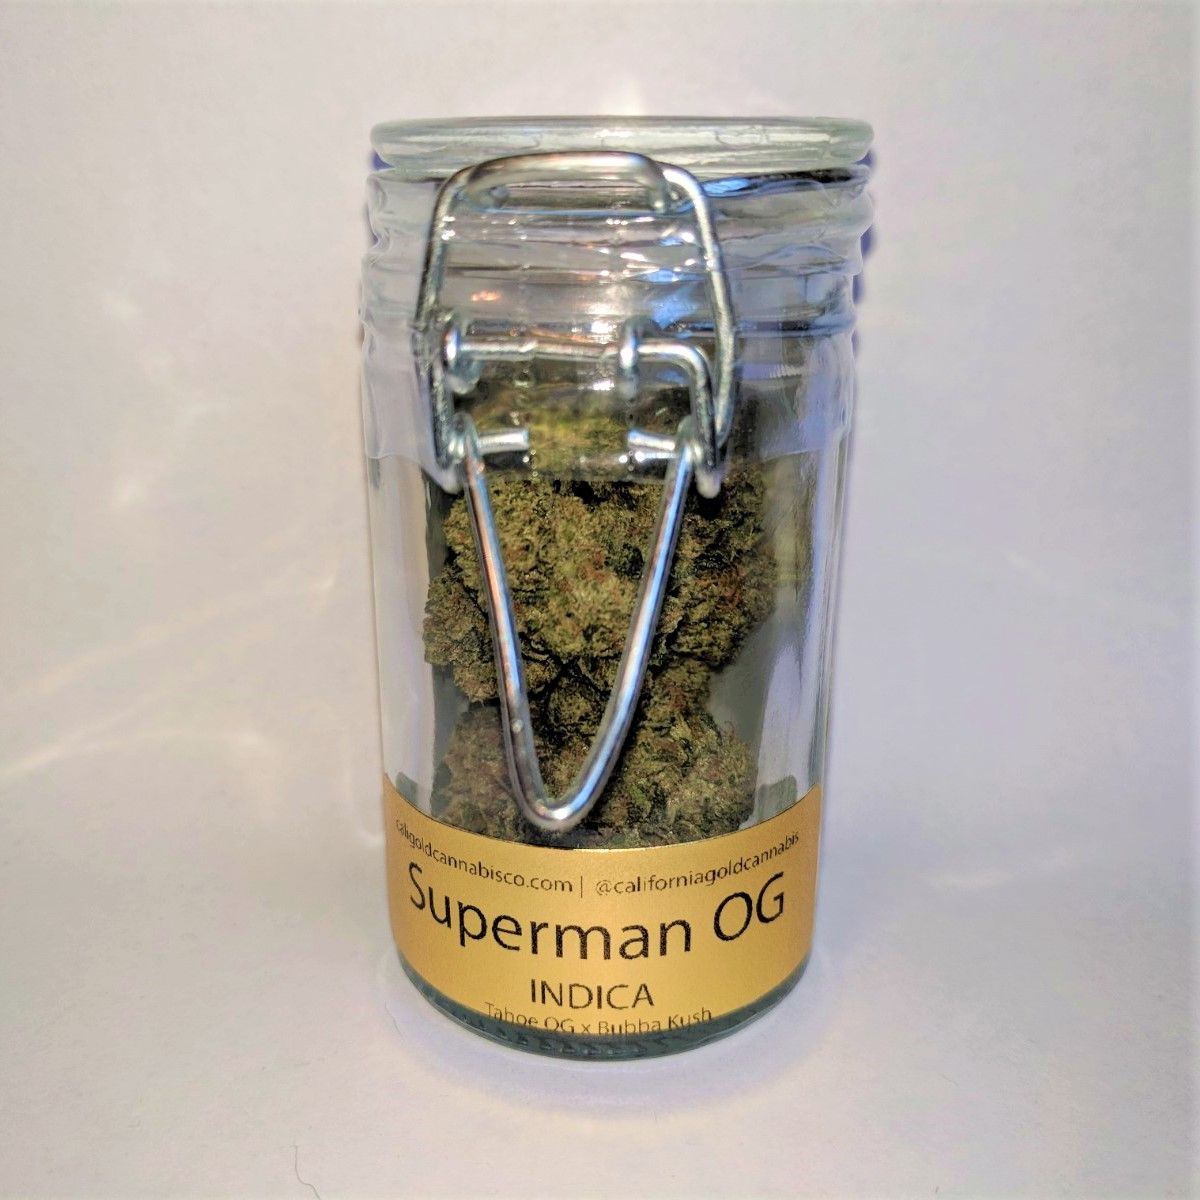 California Gold Cannabis Co. Superman OG